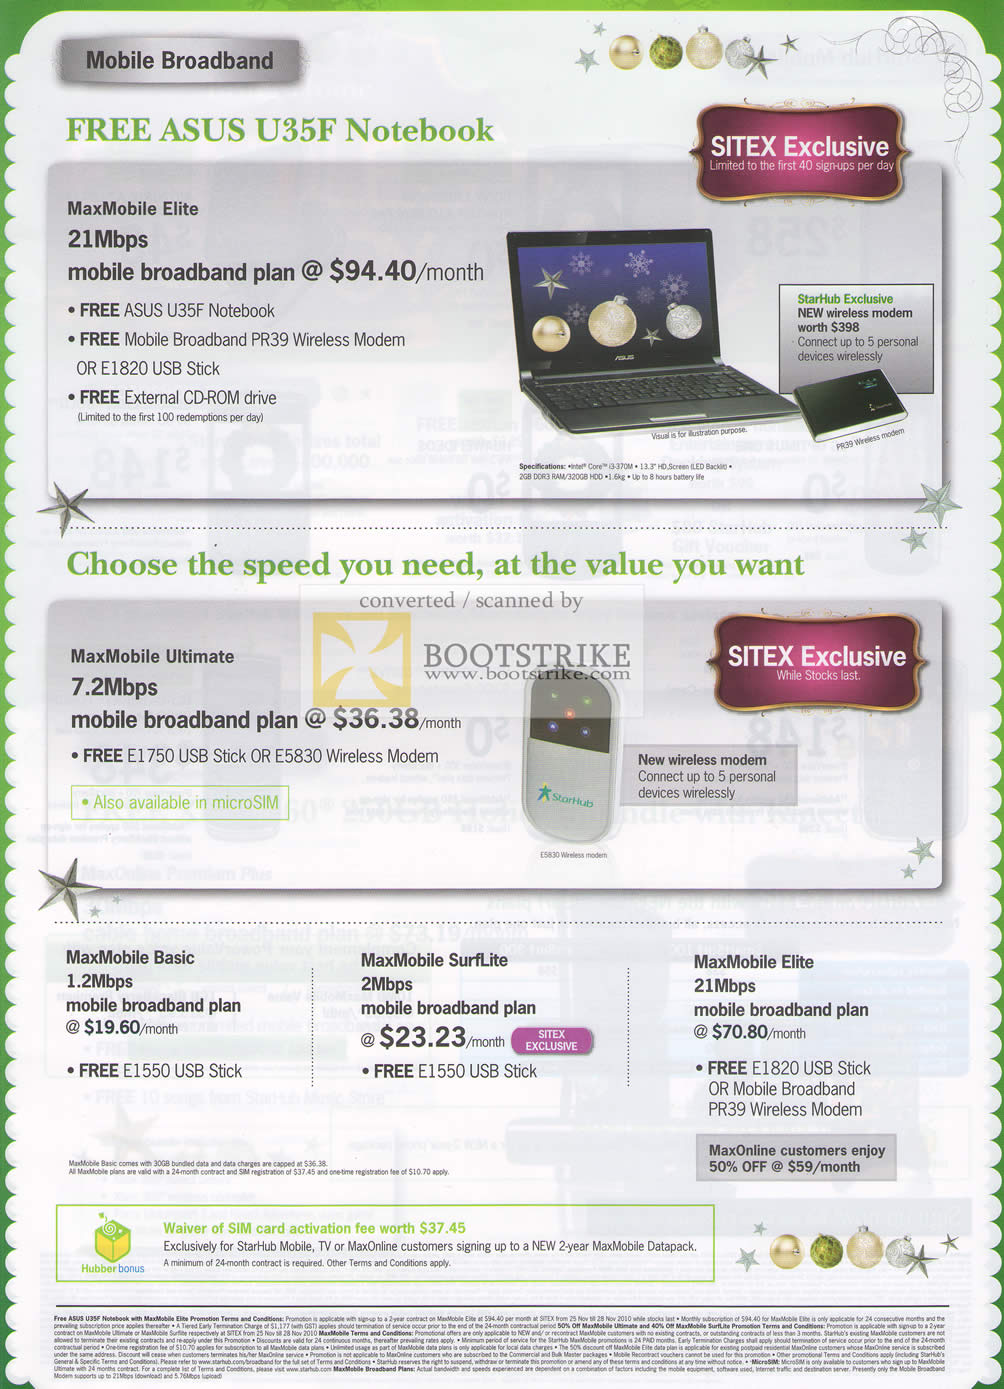 Sitex 2010 price list image brochure of Starhub Mobile Broadband ASUS U35F Maxmobile Elite Ultimate Basic SurfLite Elite